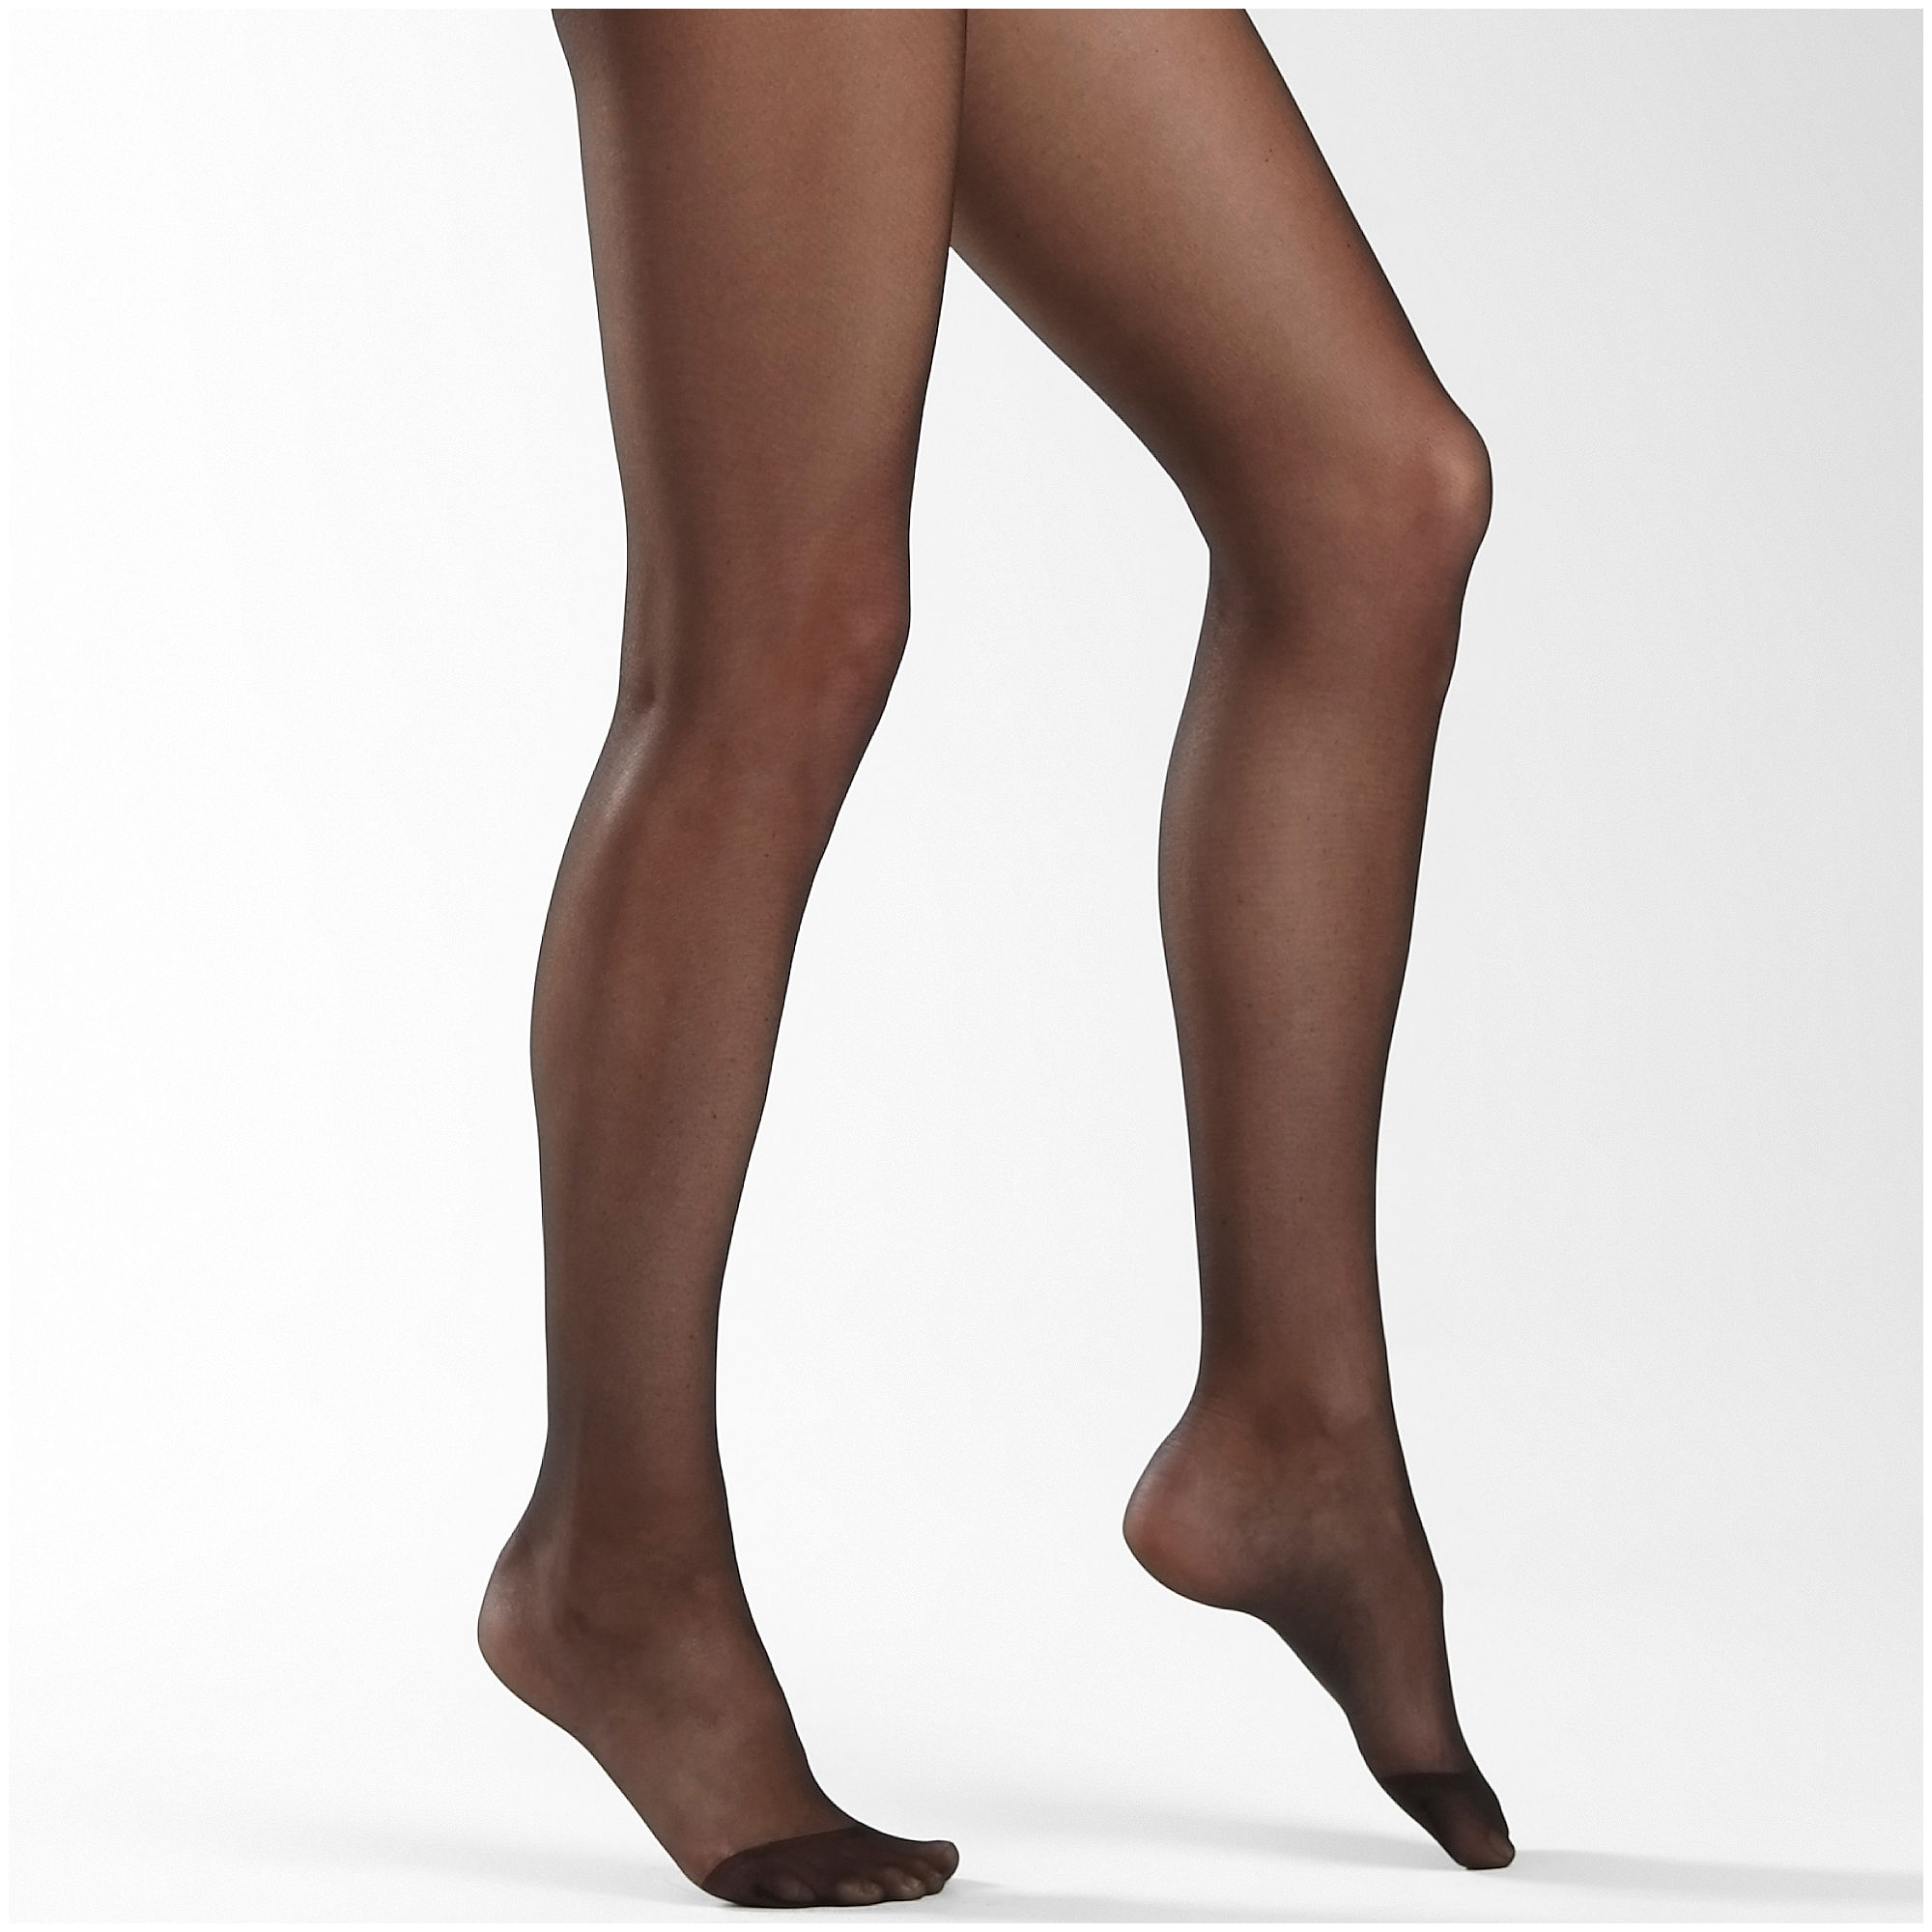 19efffc4f26 ... UPC 011321016090 product image for Sheer Caress Control Top Pantyhose